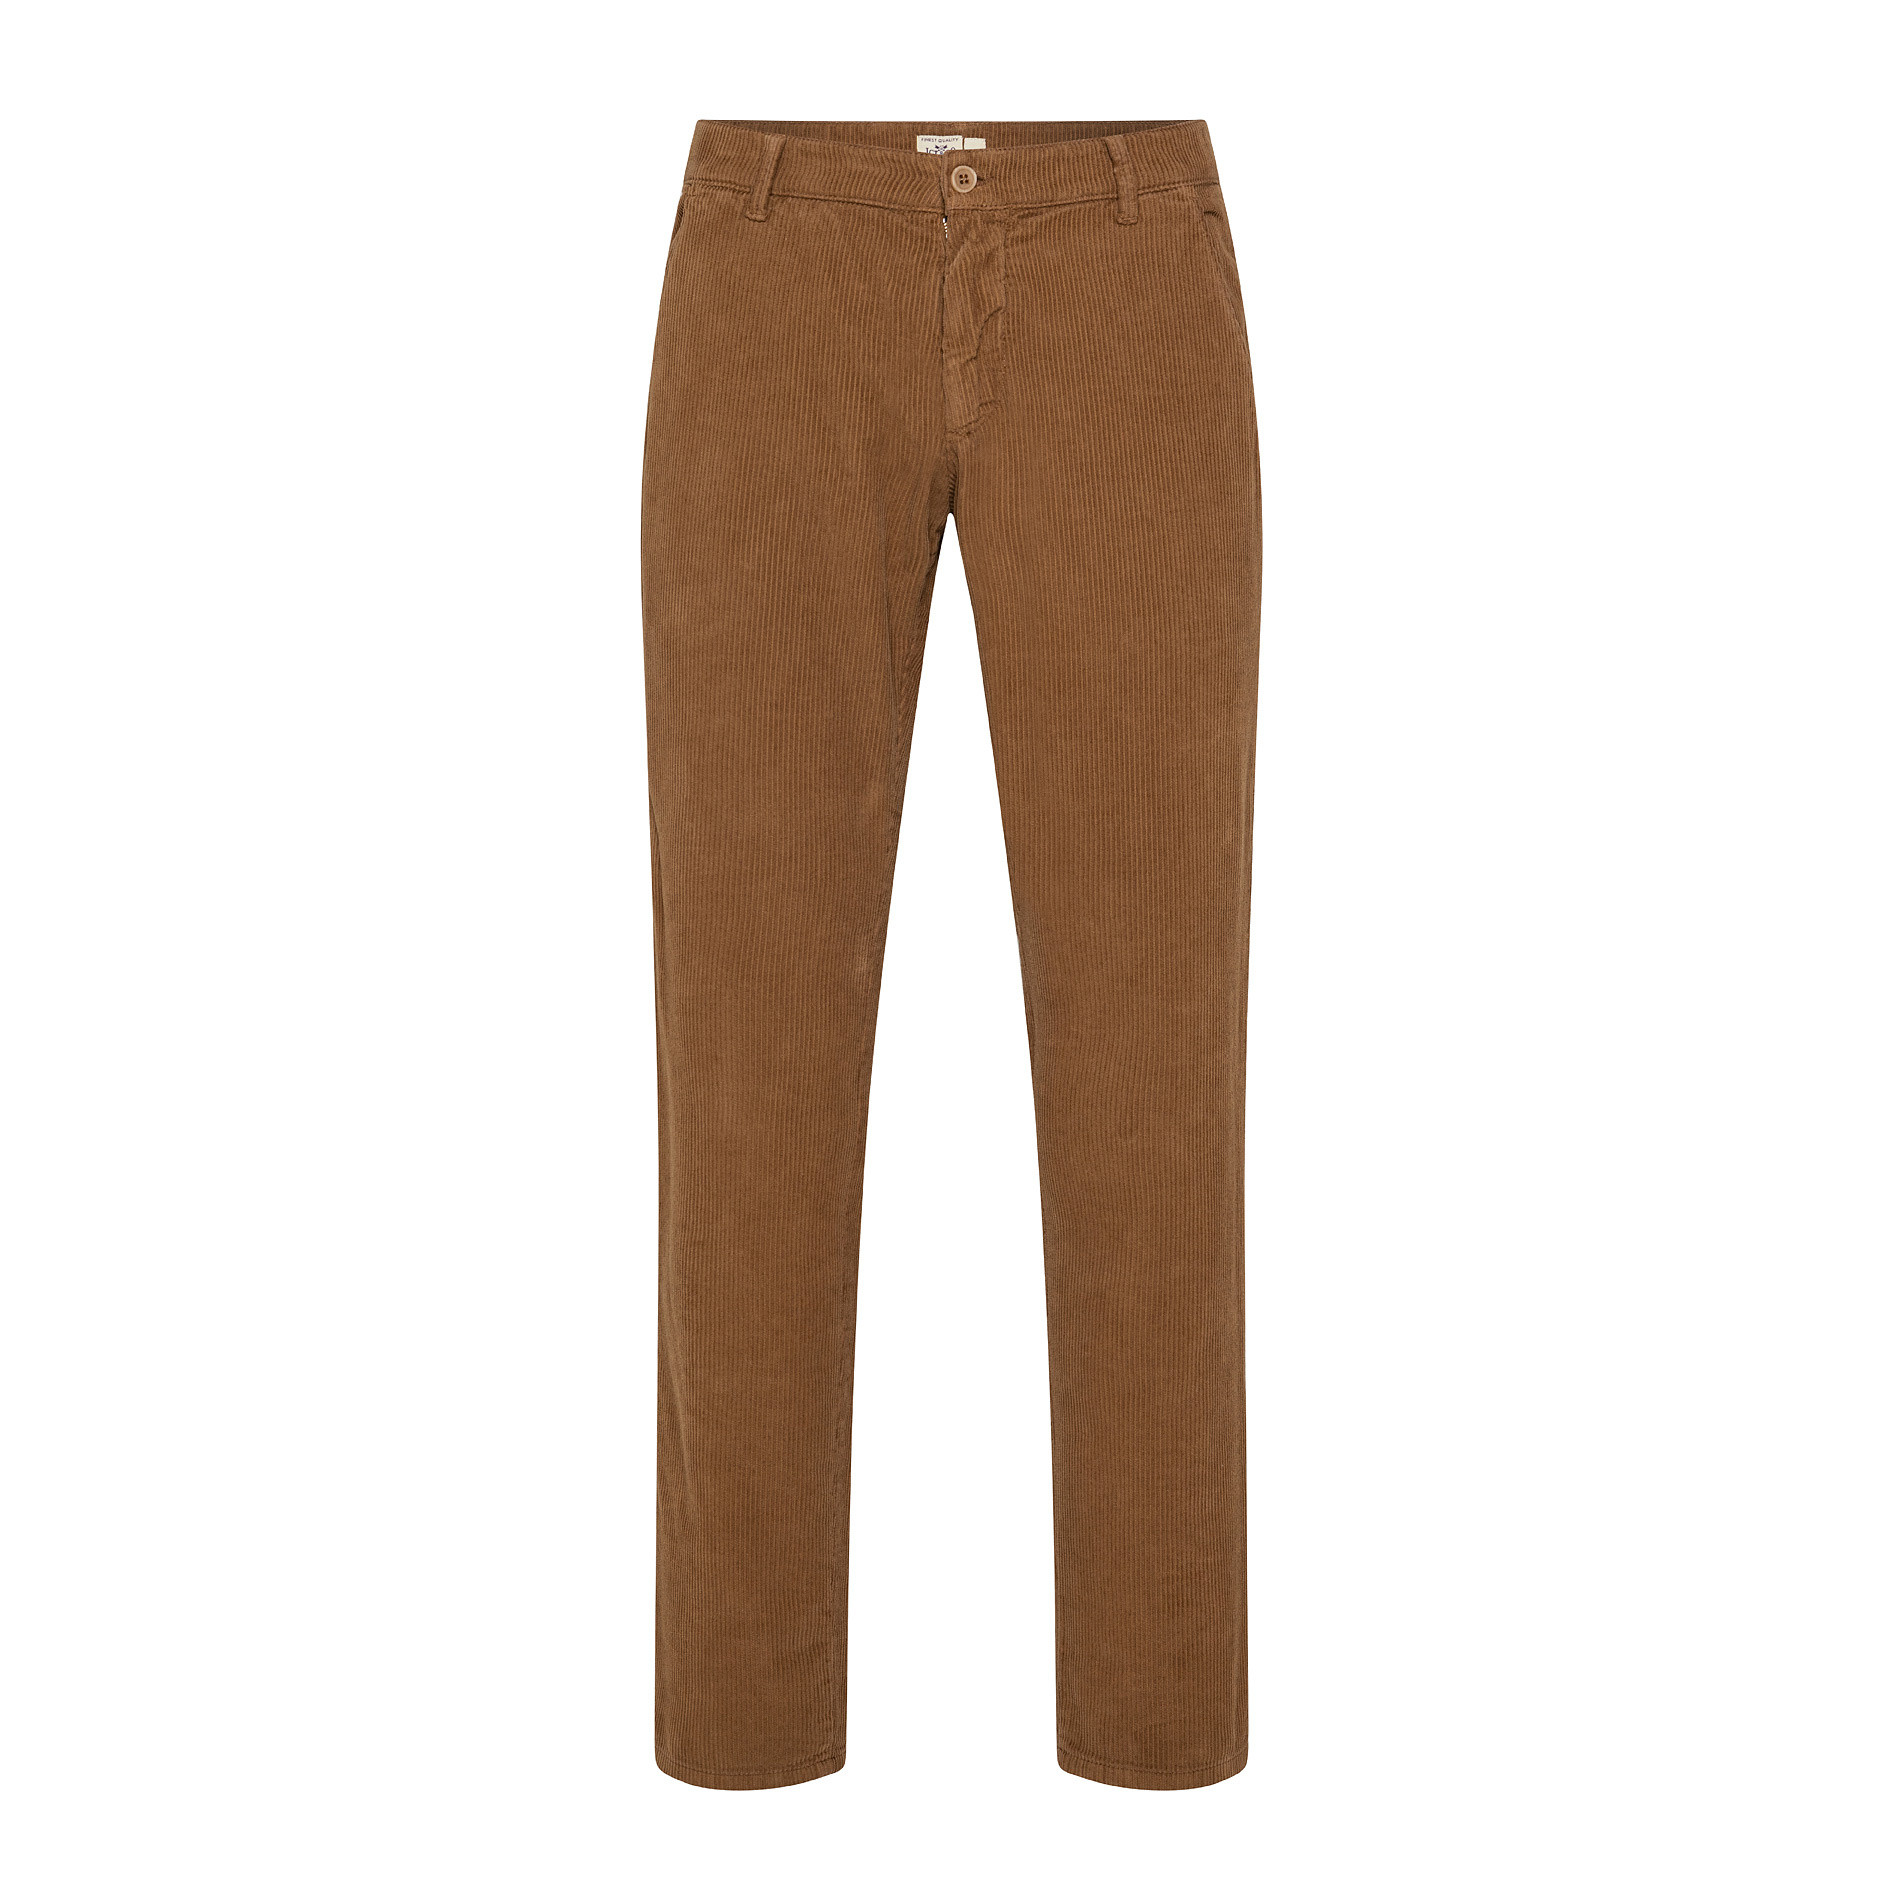 Pantaloni chino velluto stretch, Beige scuro, large image number 0